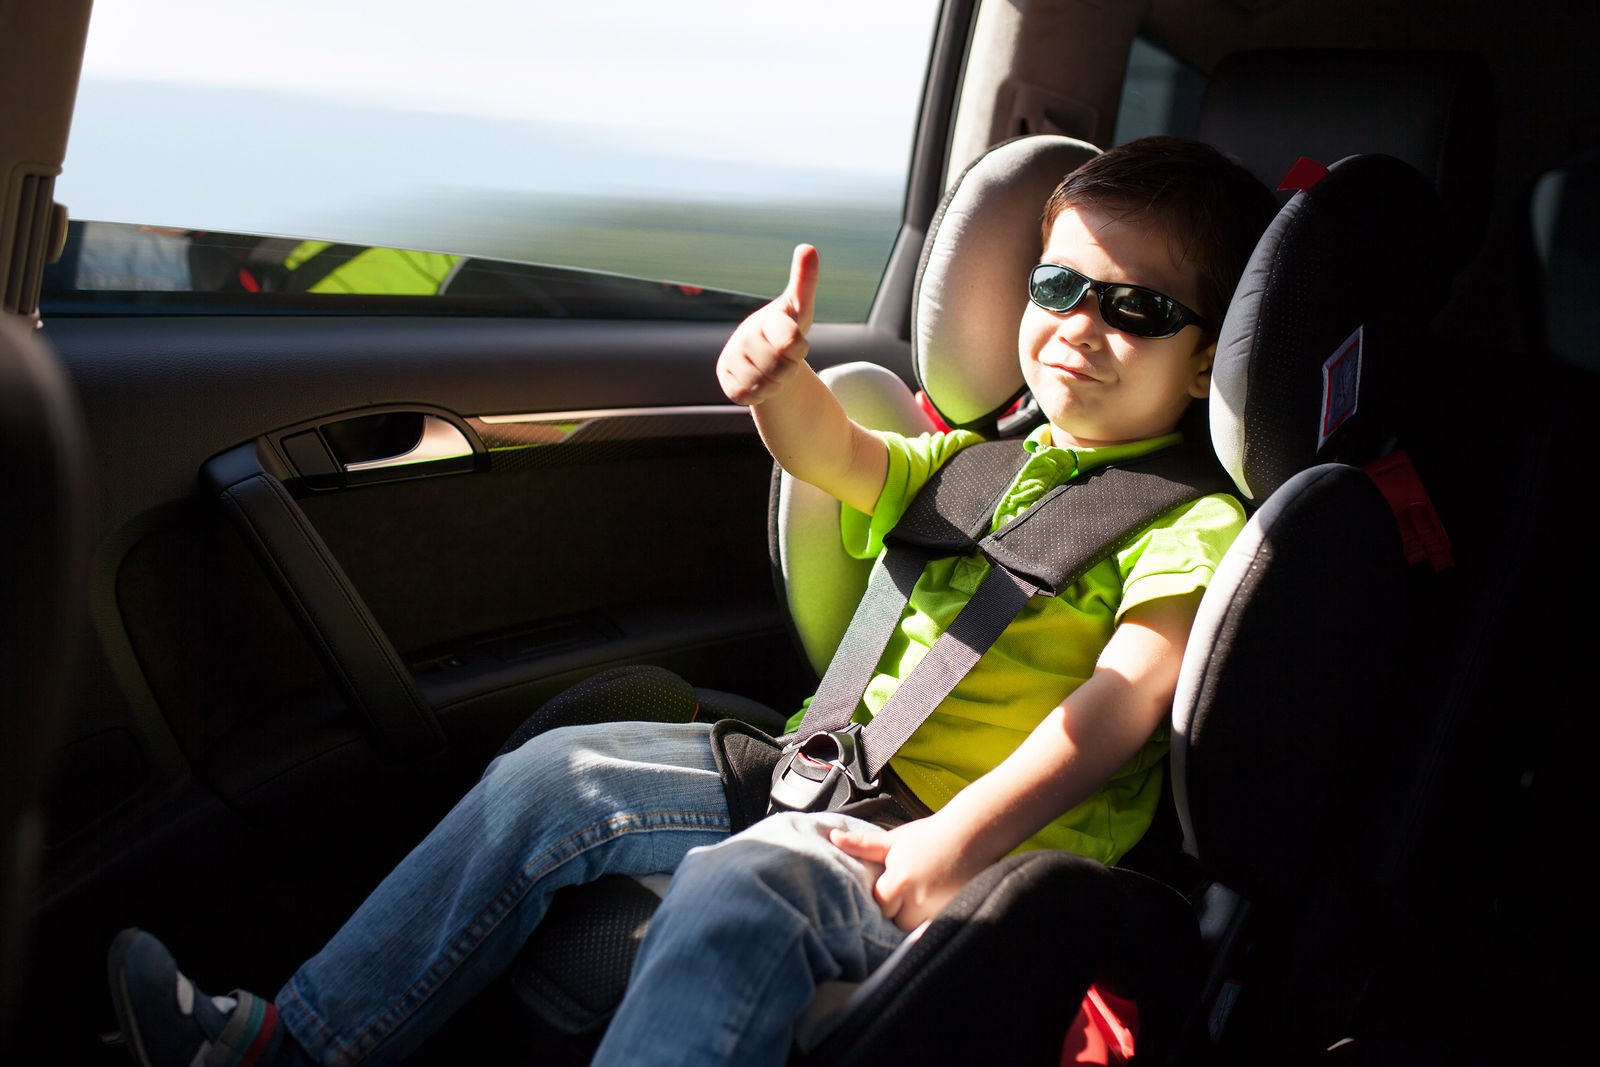 What are the child safety seat laws in Arizona?